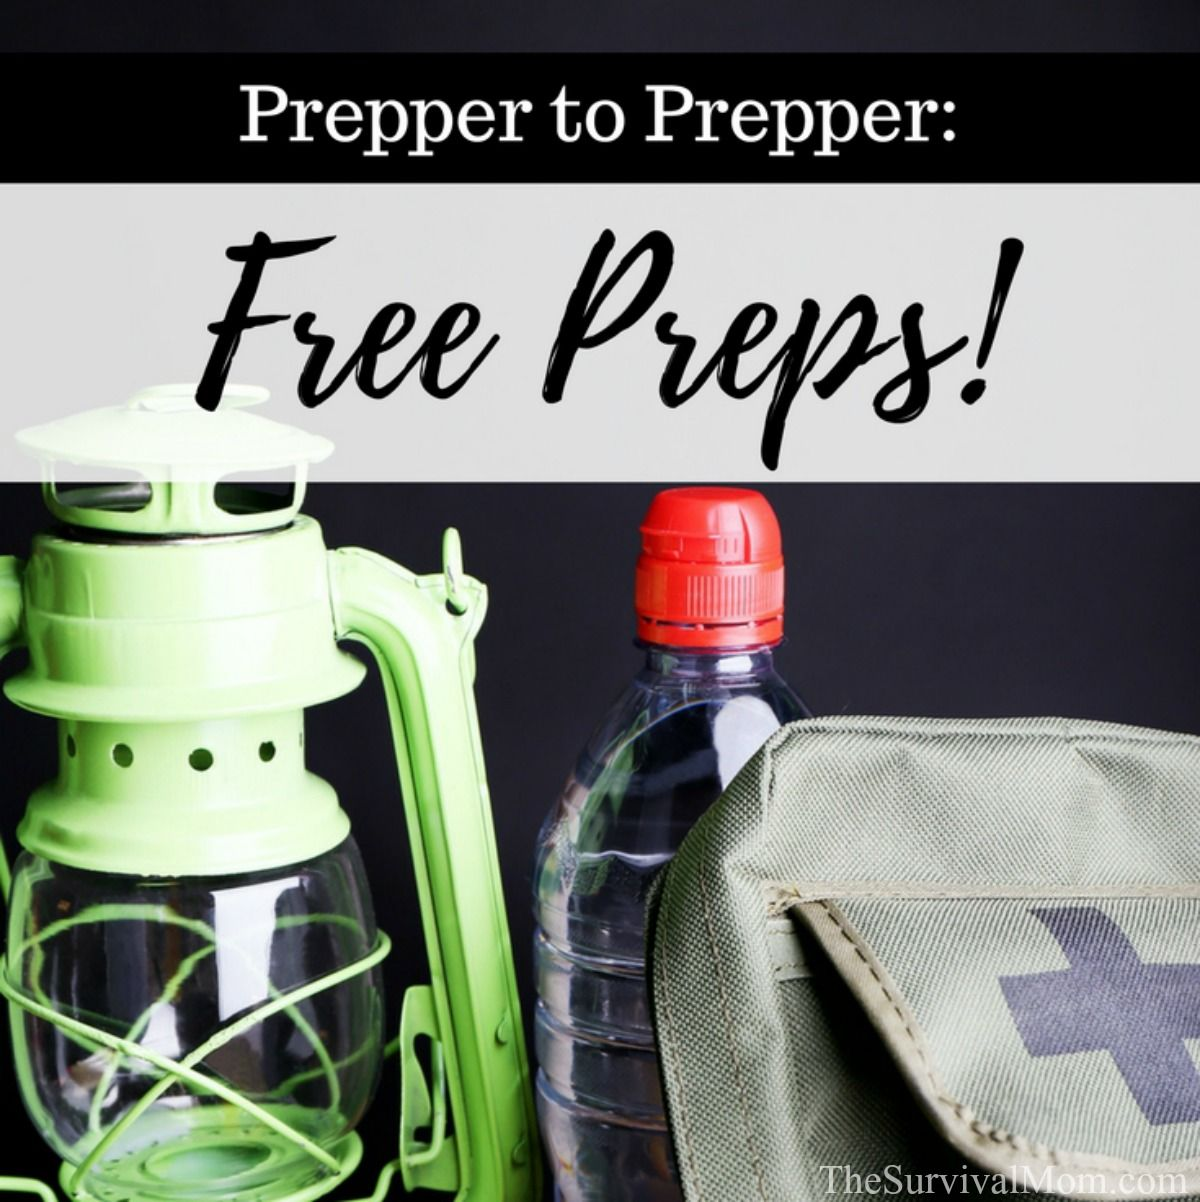 Prepper to Prepper Free Preps via The Survival Mom